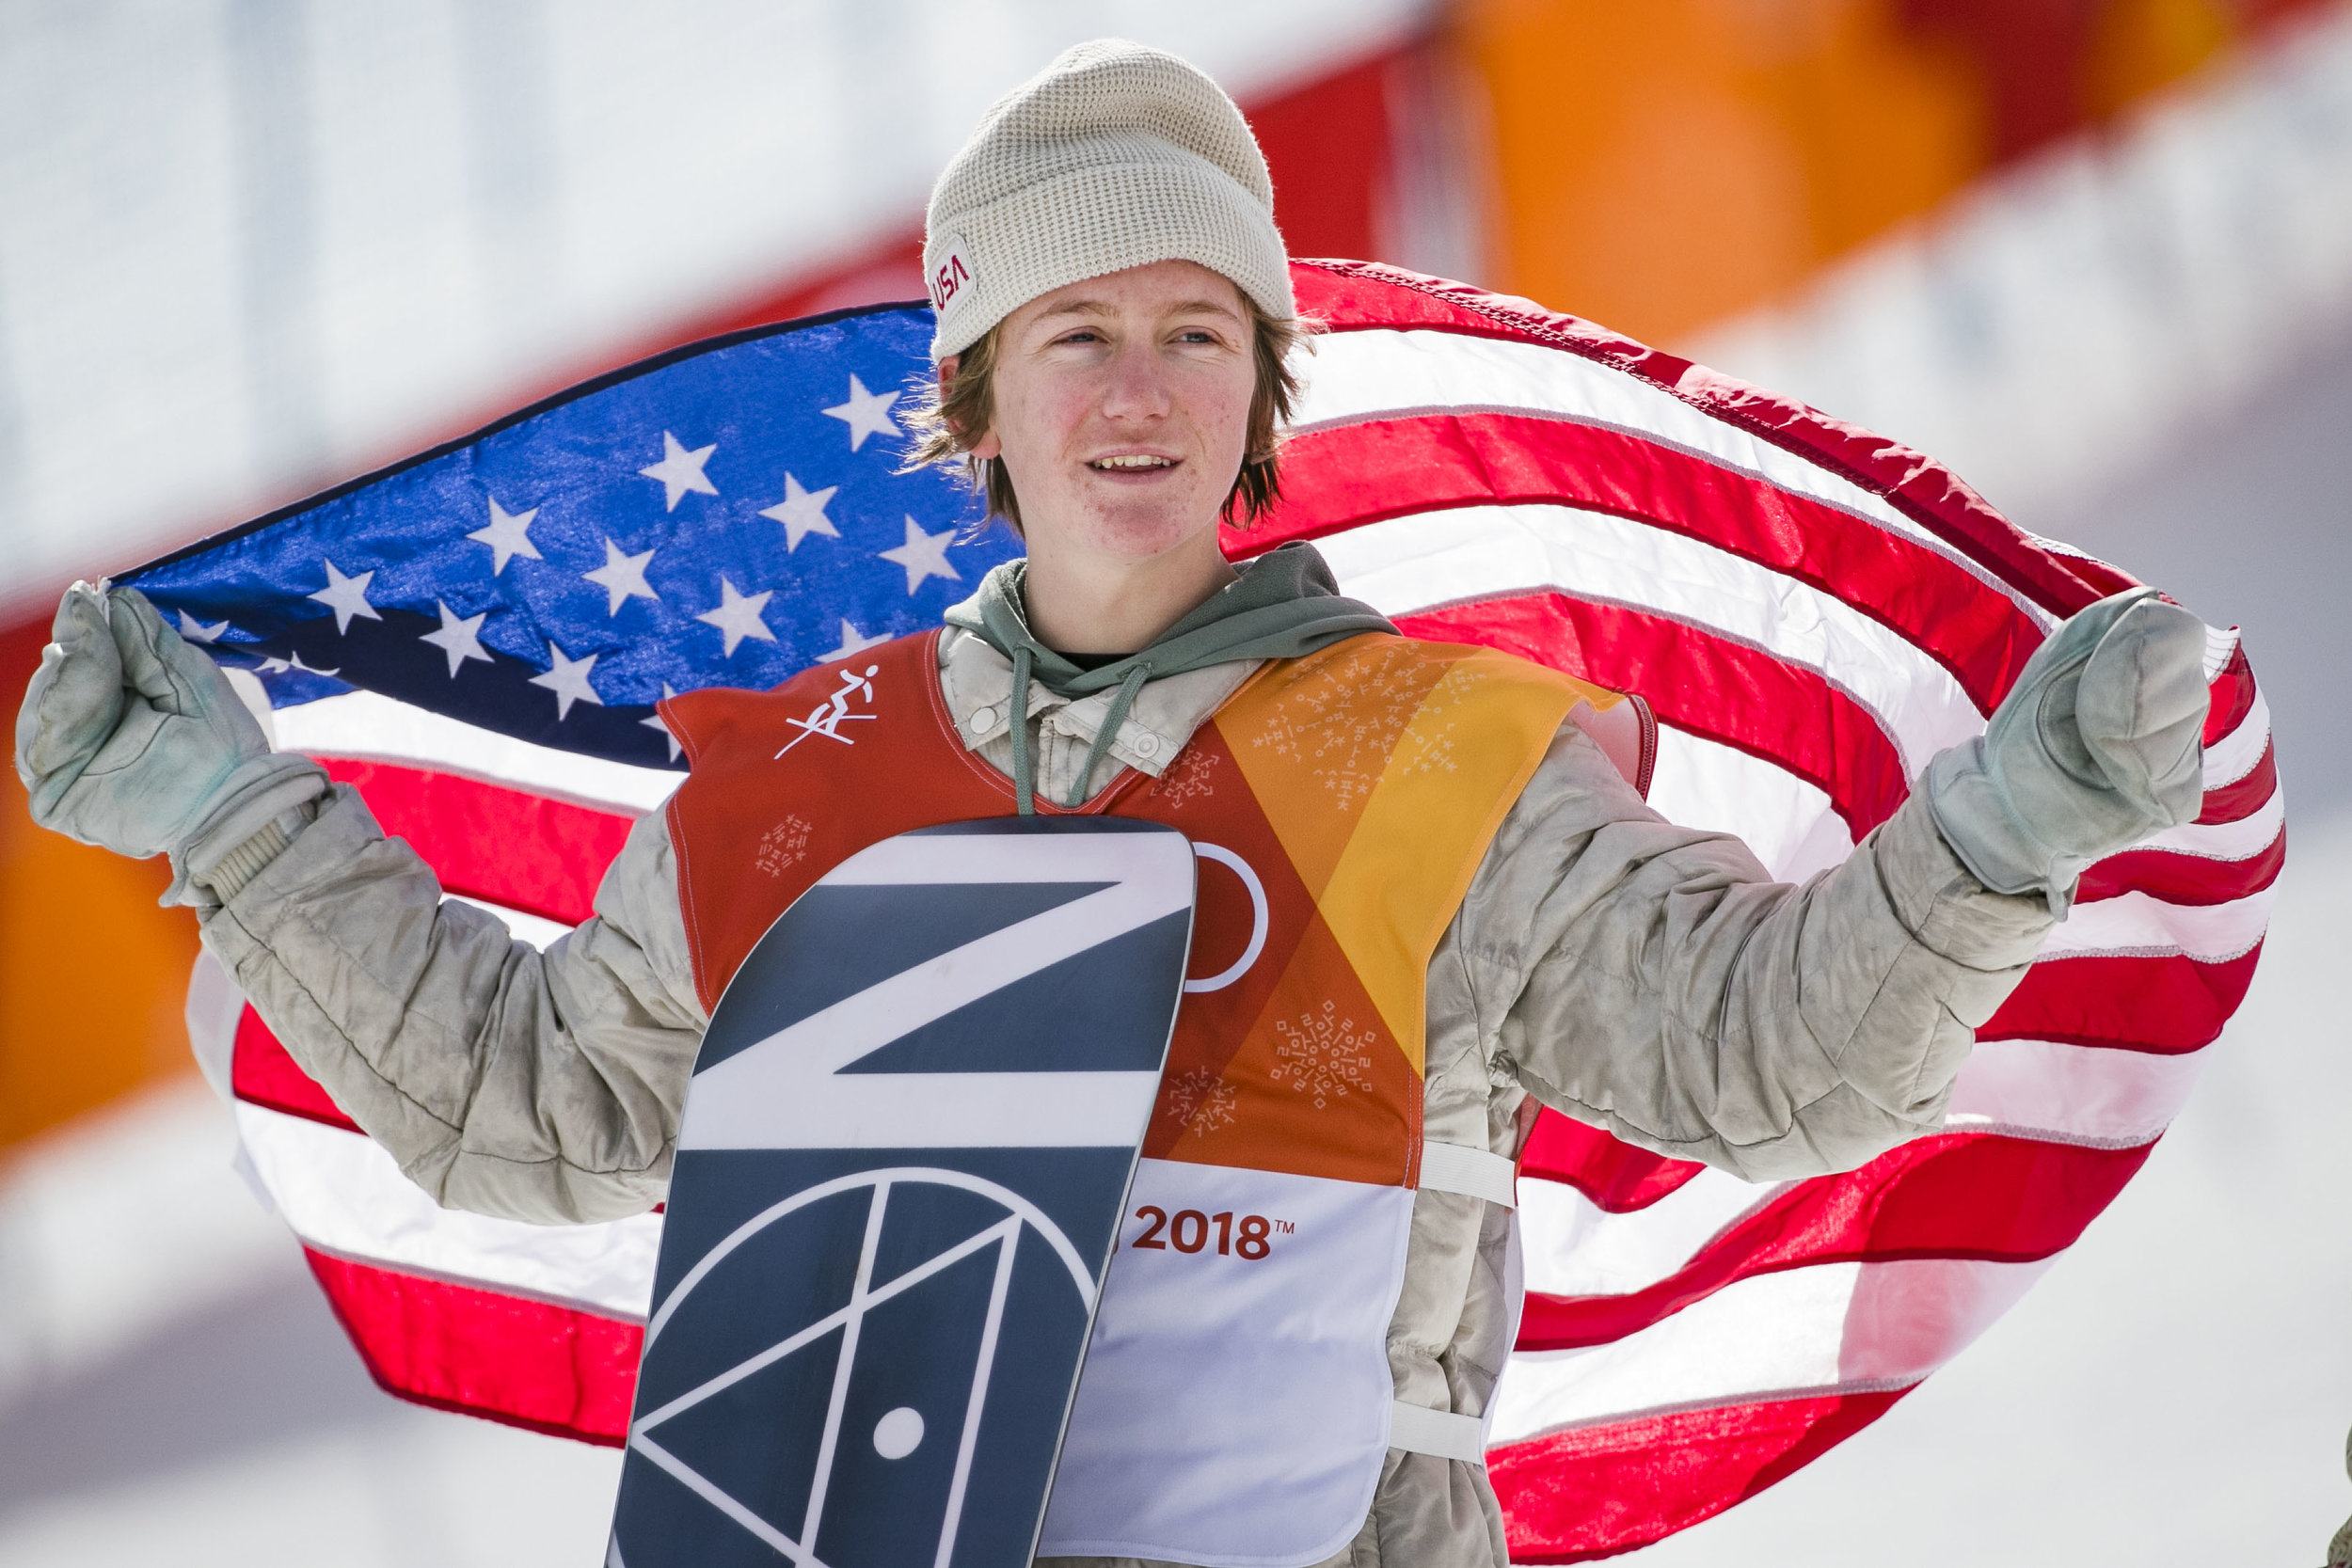 The first U.S. gold medal won by snowboard slopestyle 17-year-old Red Gerard, Feb. 11 at Phoenix Snow Park holds up an American flag during the medaling ceremony.